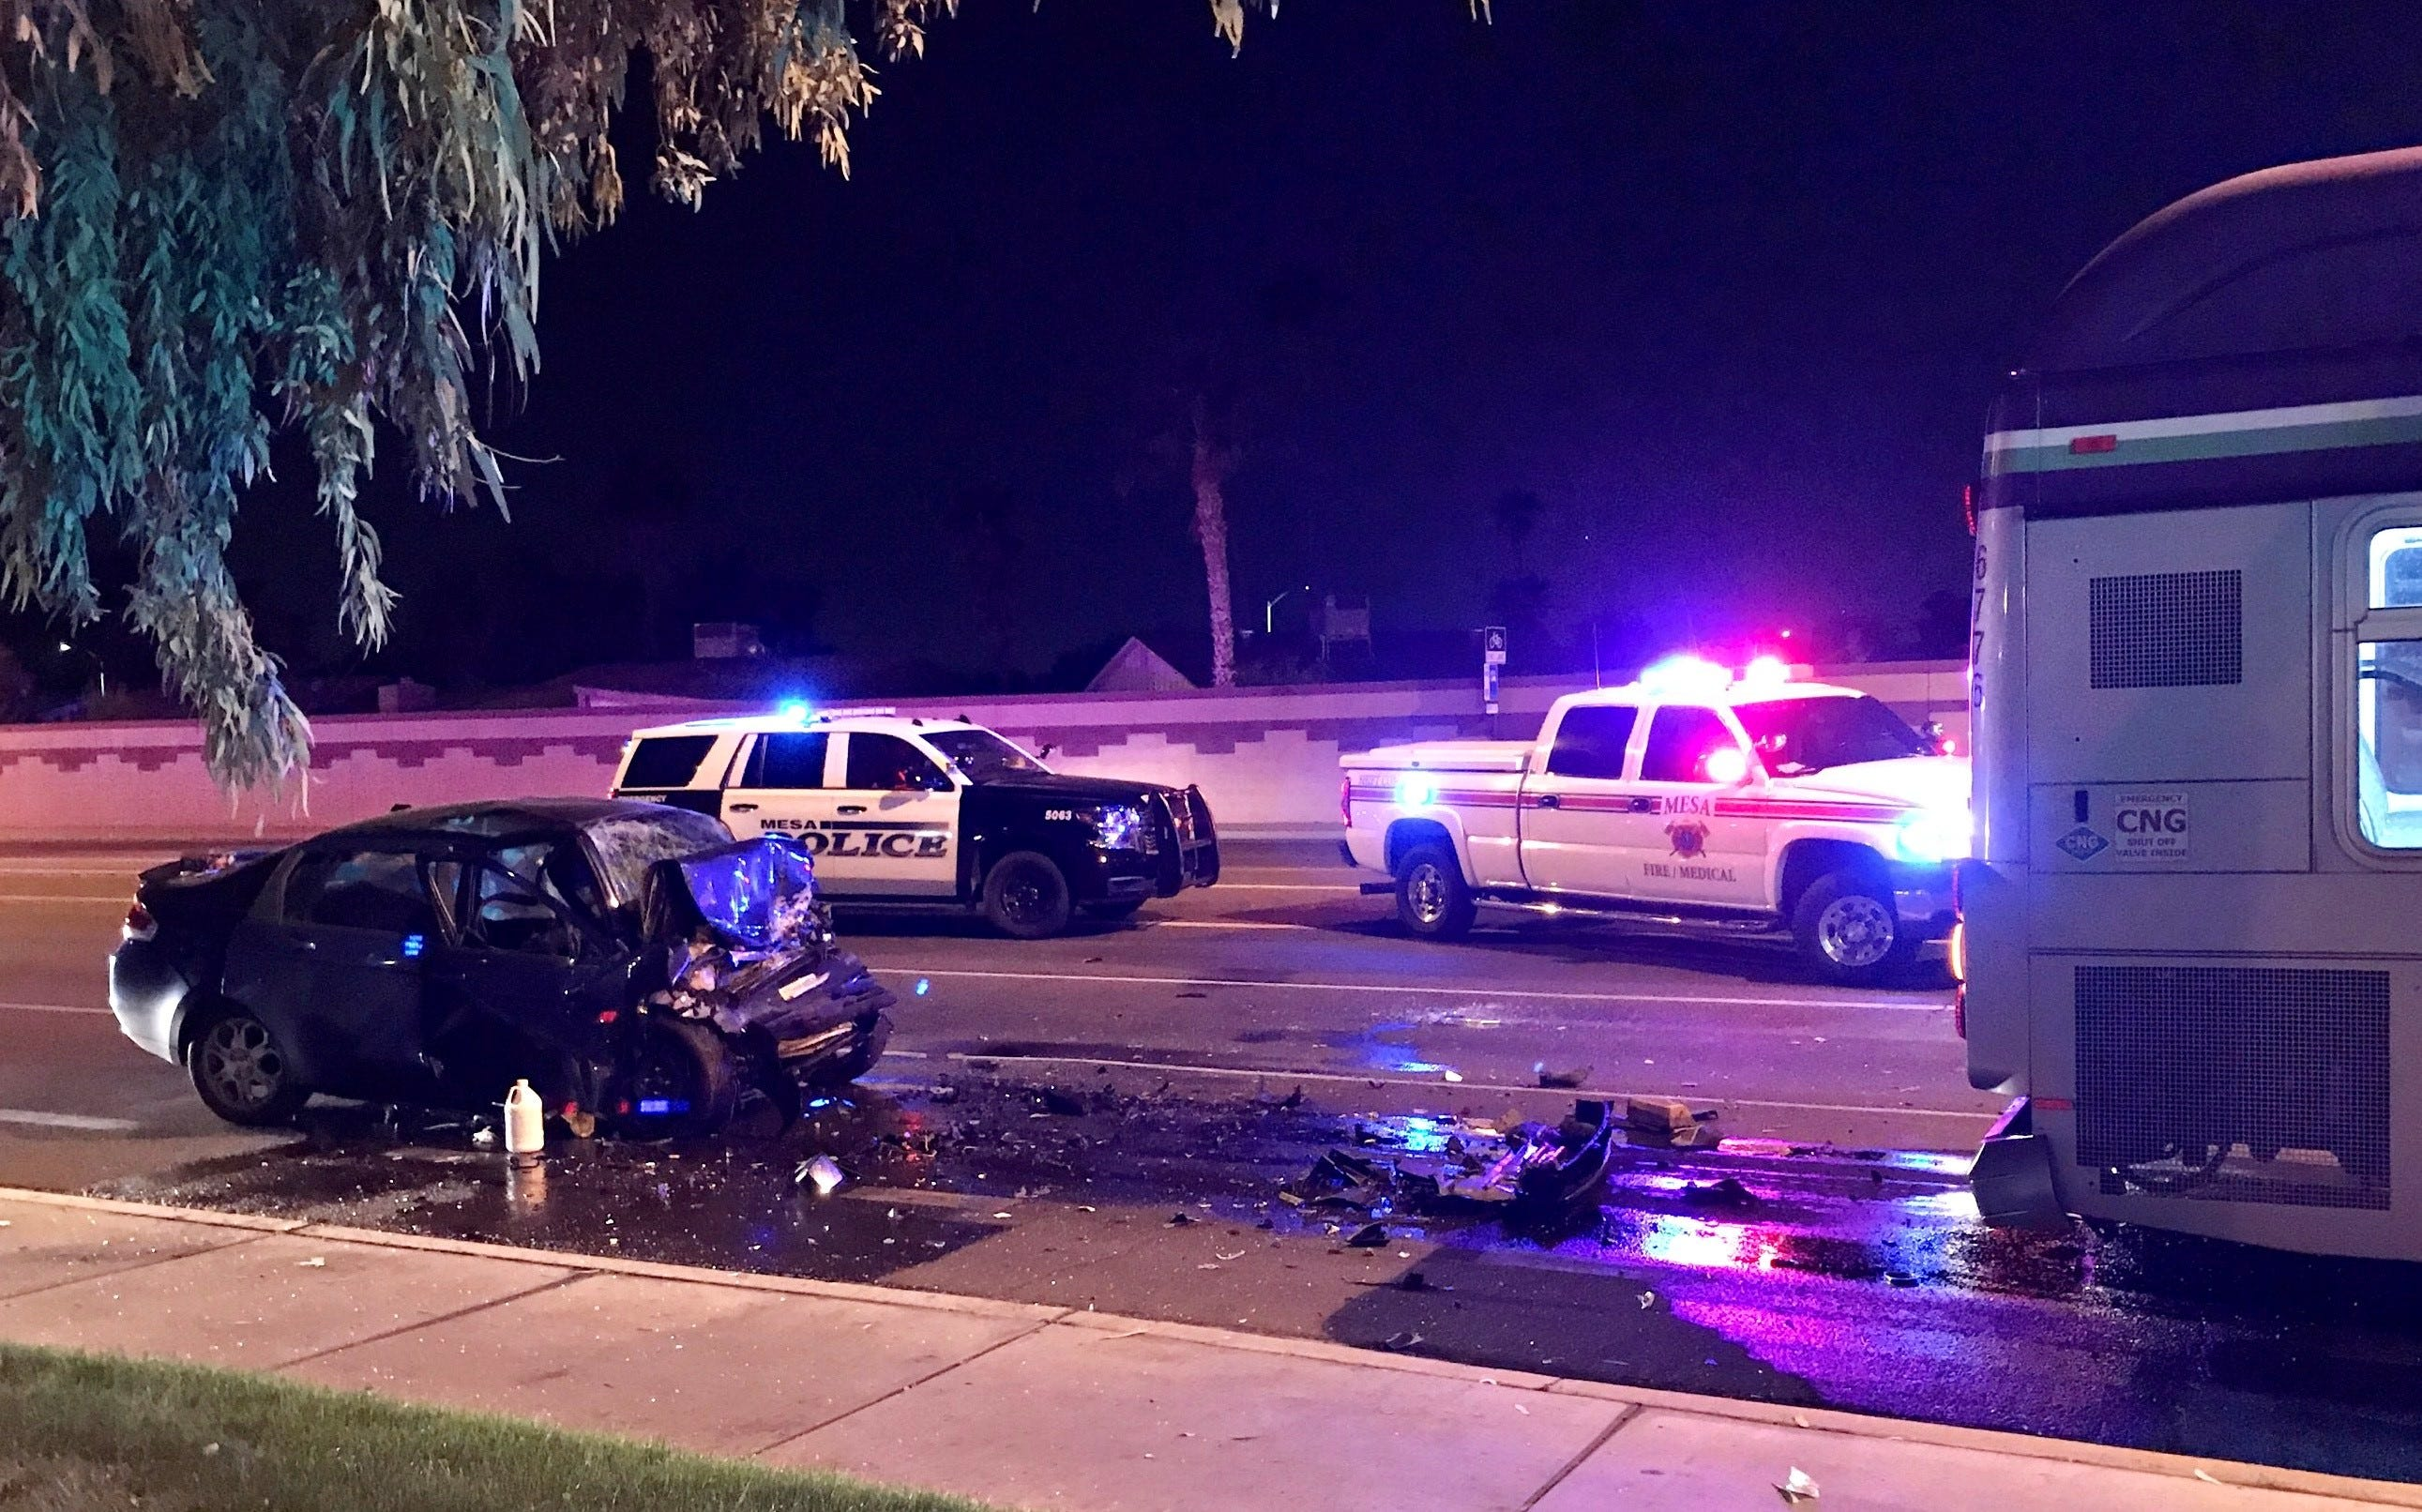 Driver is dead after crashing vehicle into Valley Metro bus in Mesa